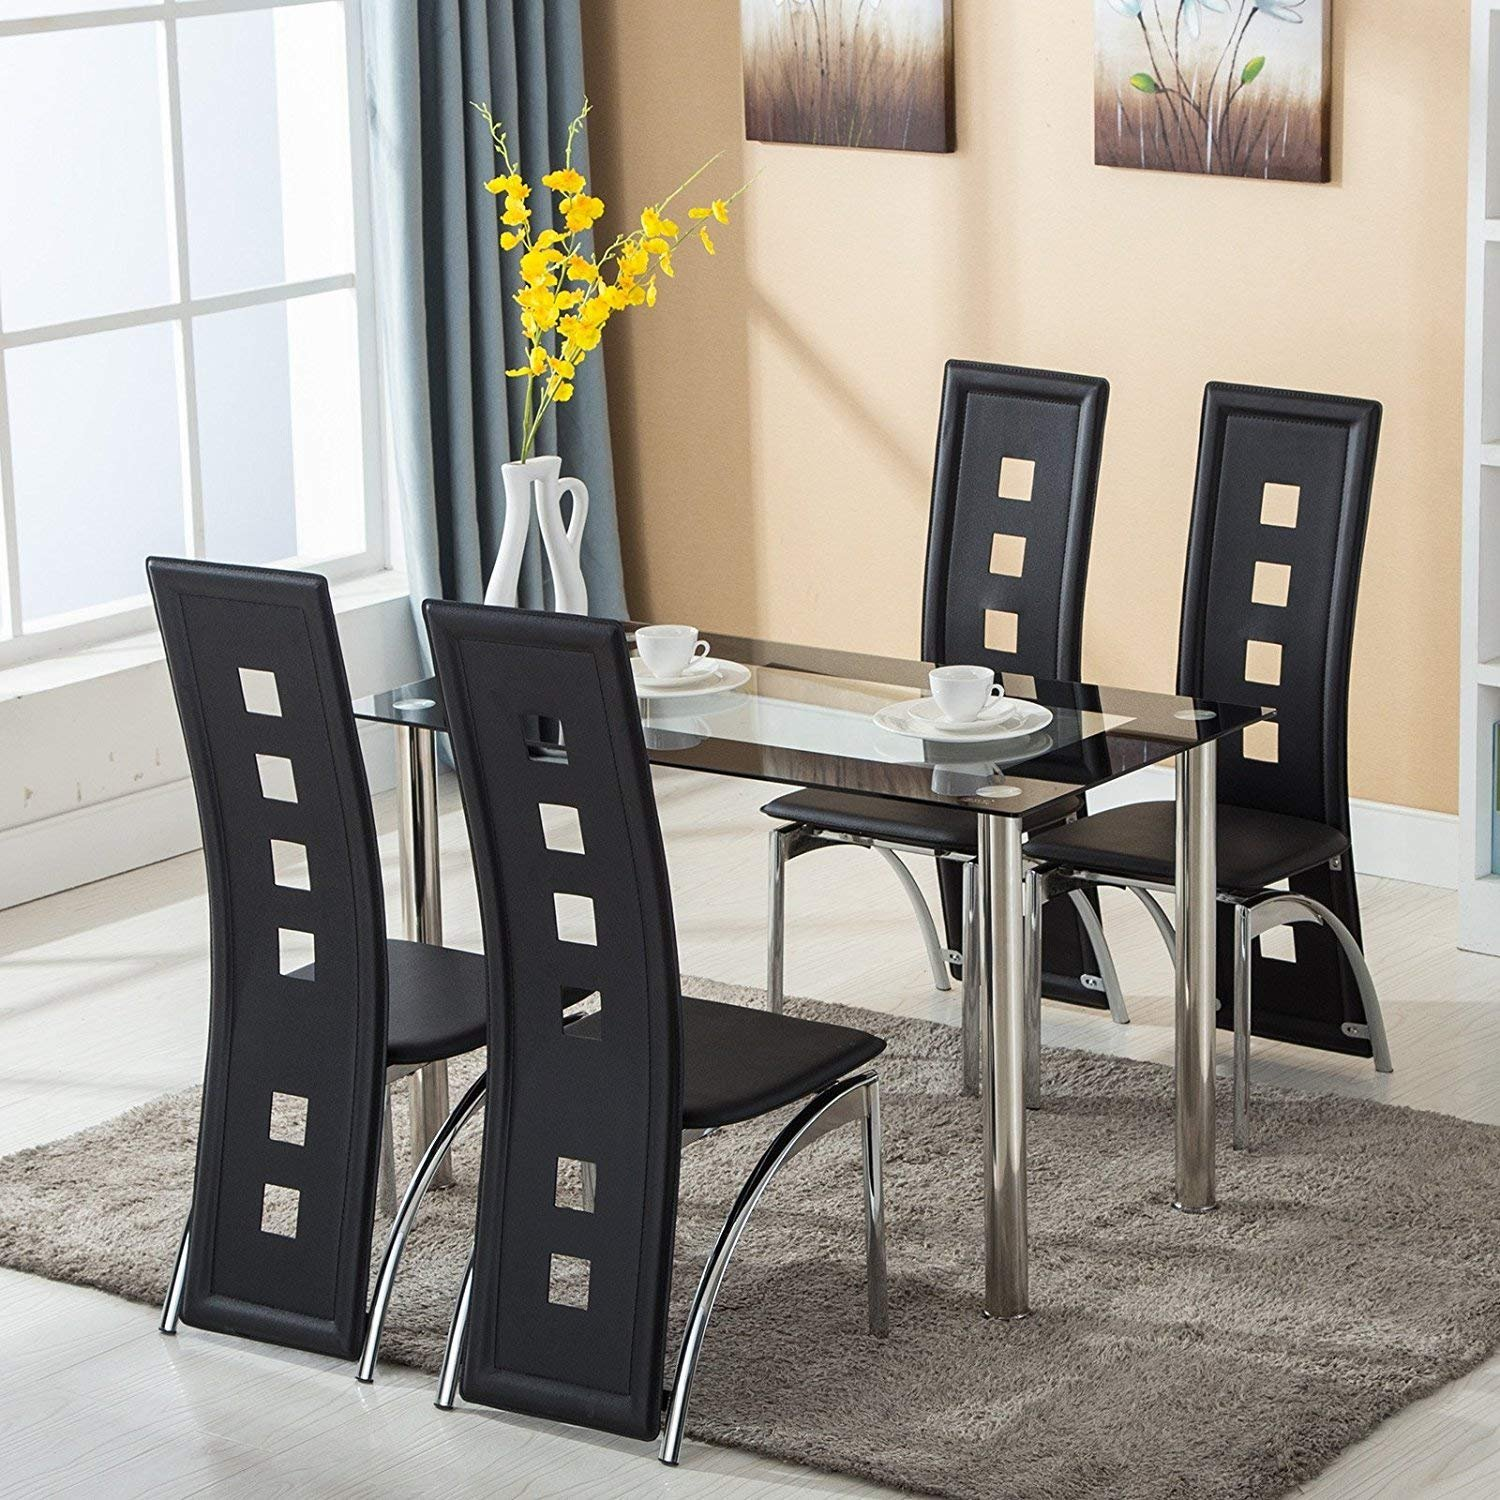 fc4a5f1009572 Amazon.com - Mecor Dining Room Table Set